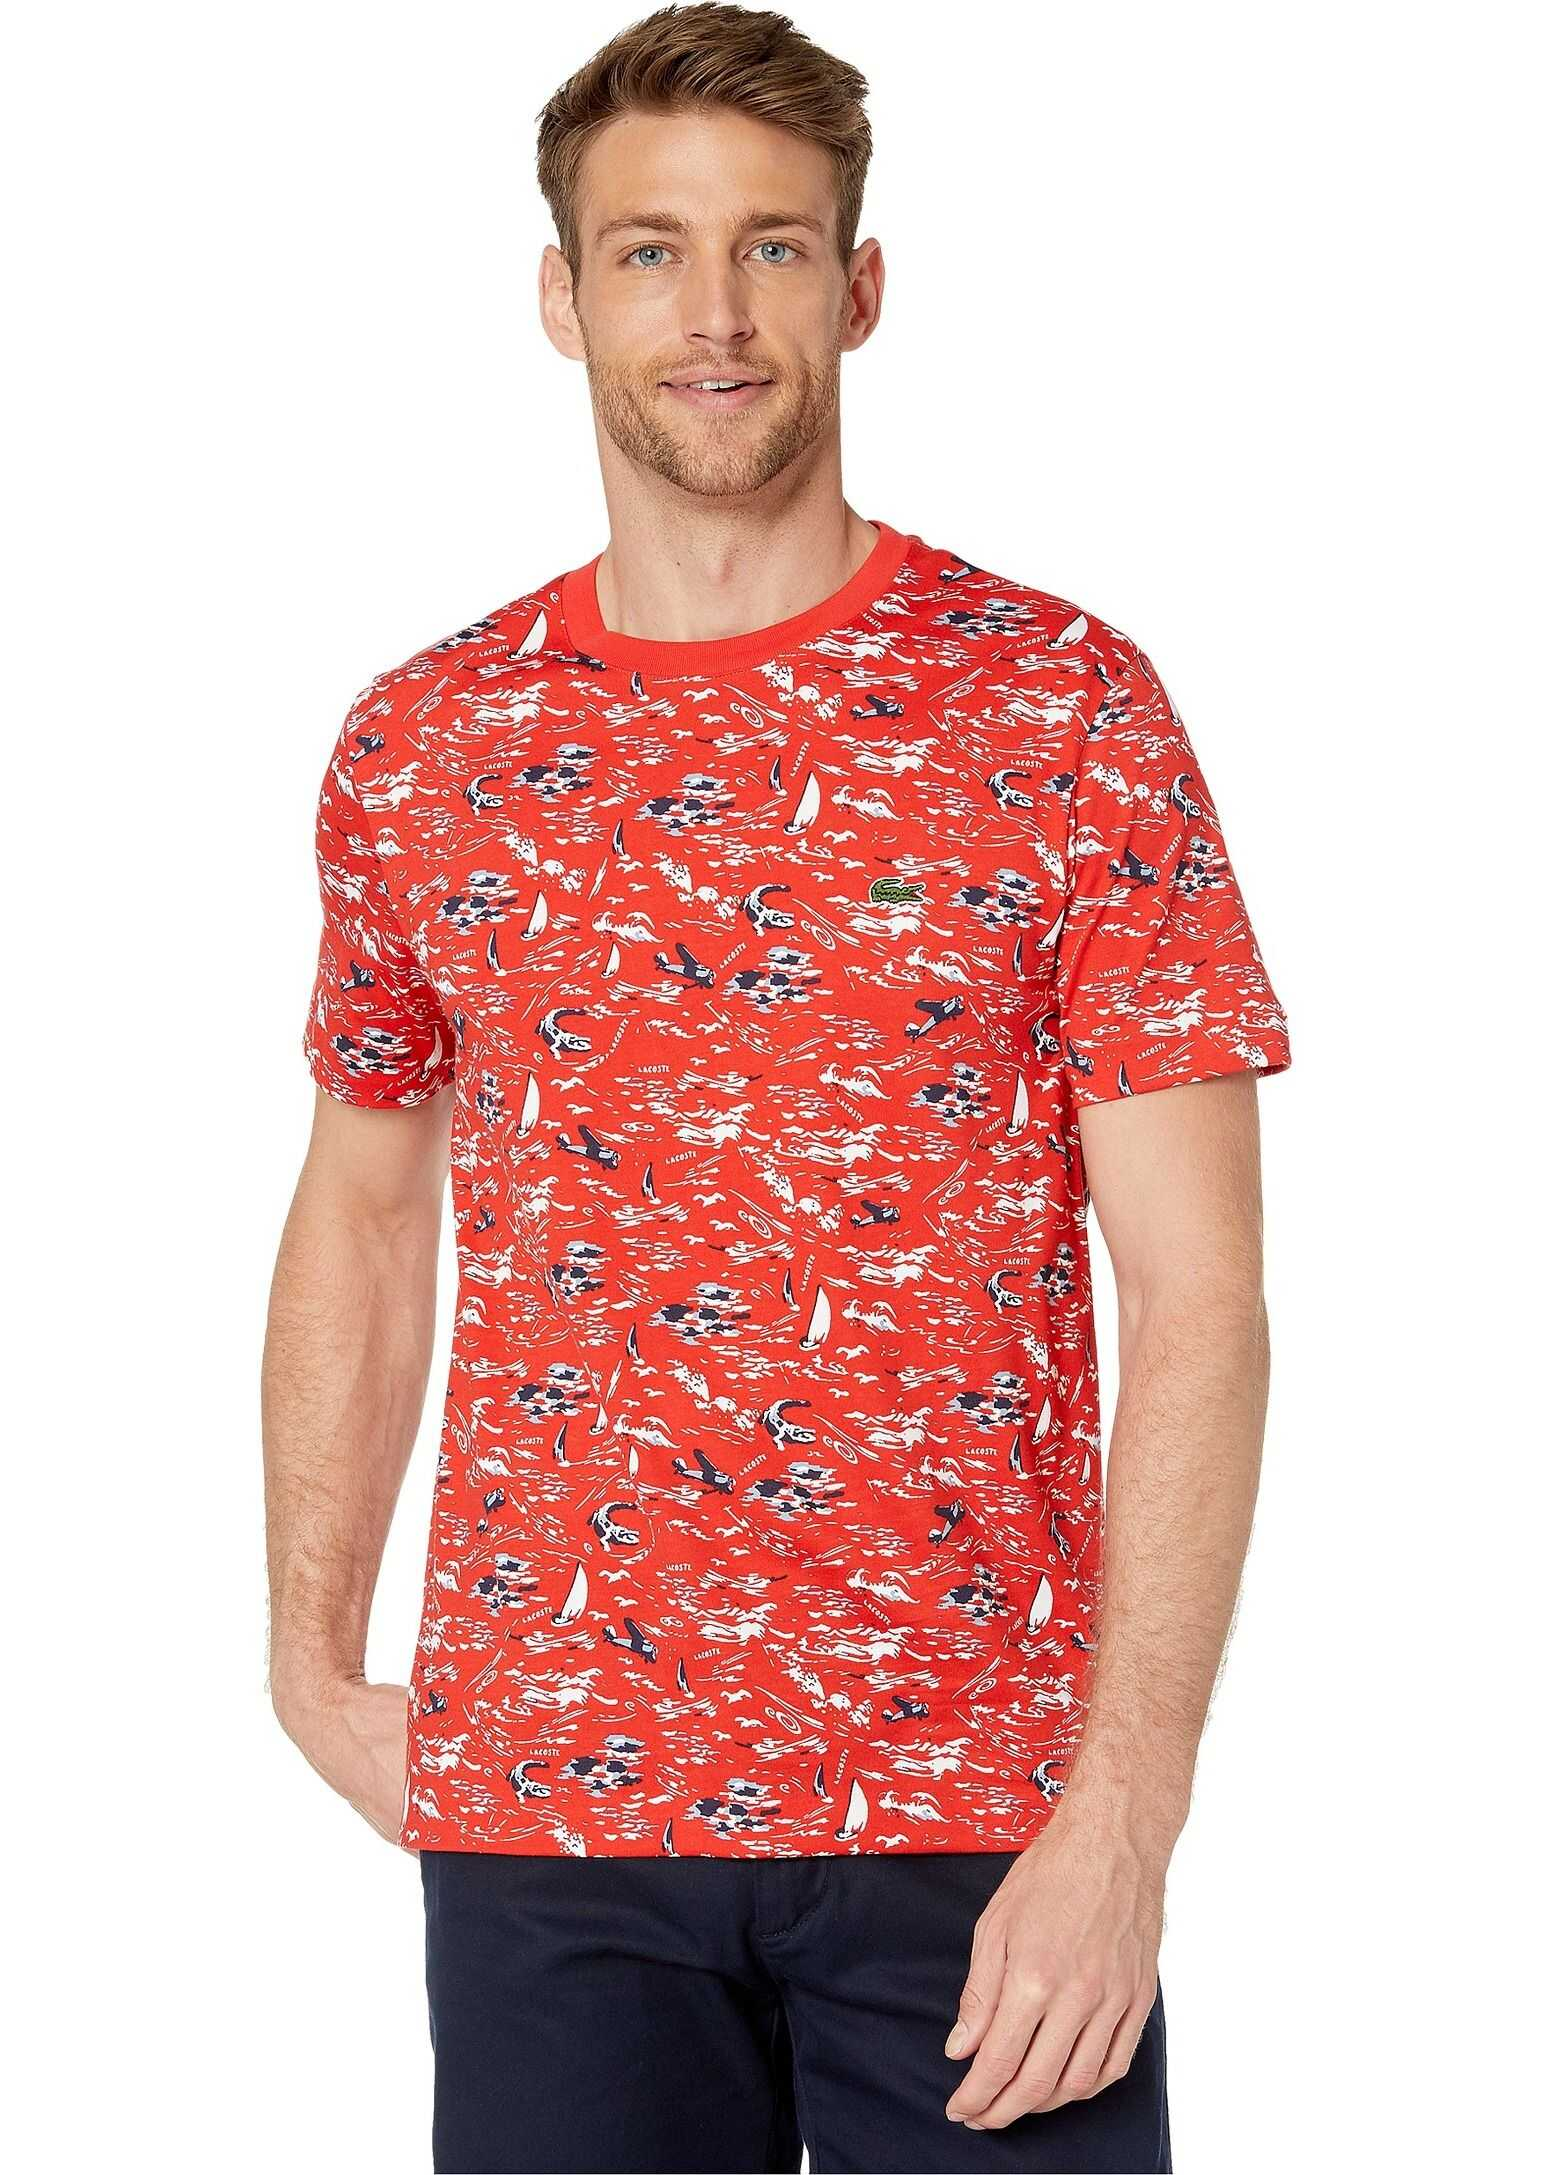 Short Sleeve All Over Printed Jersey T-Shirt